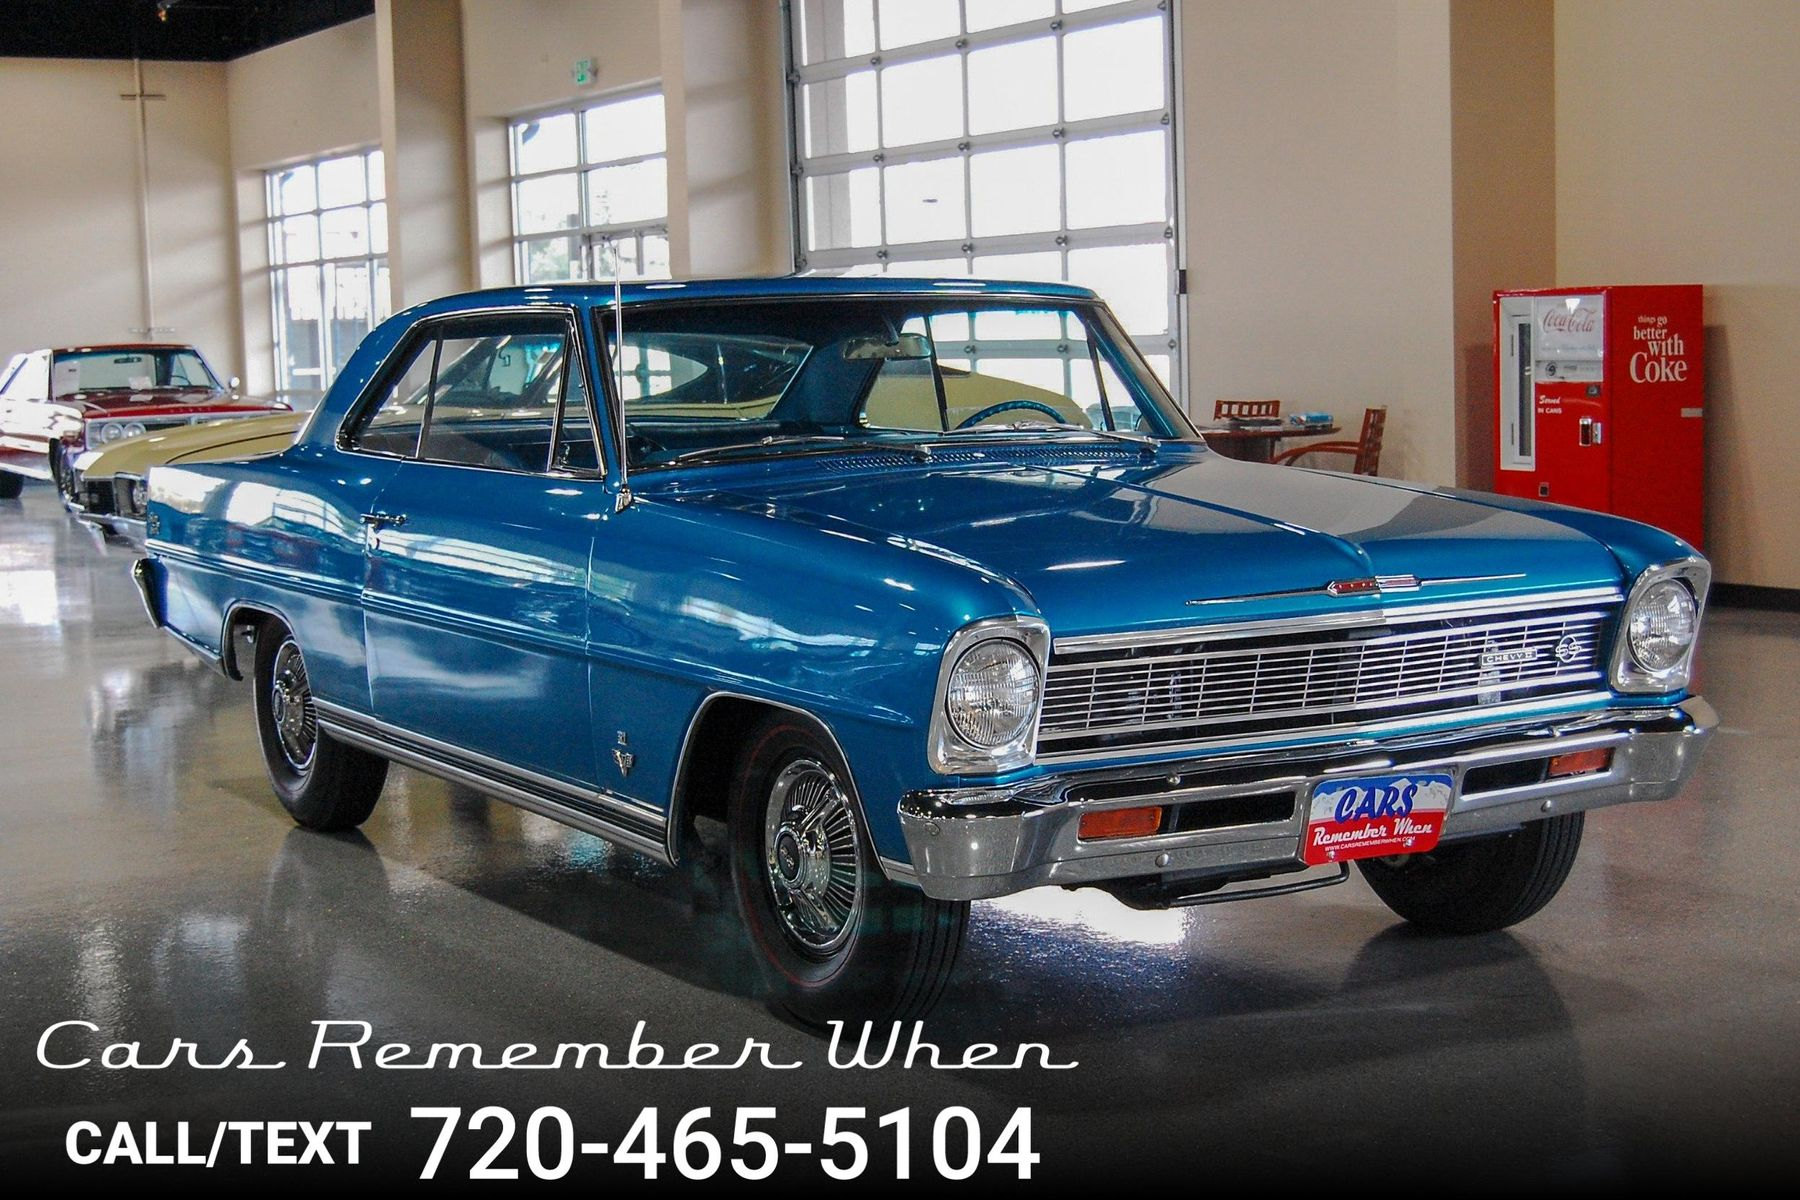 1966 Chevrolet Nova L79 Hardtop For Sale All Collector Cars Bel Air Value 1